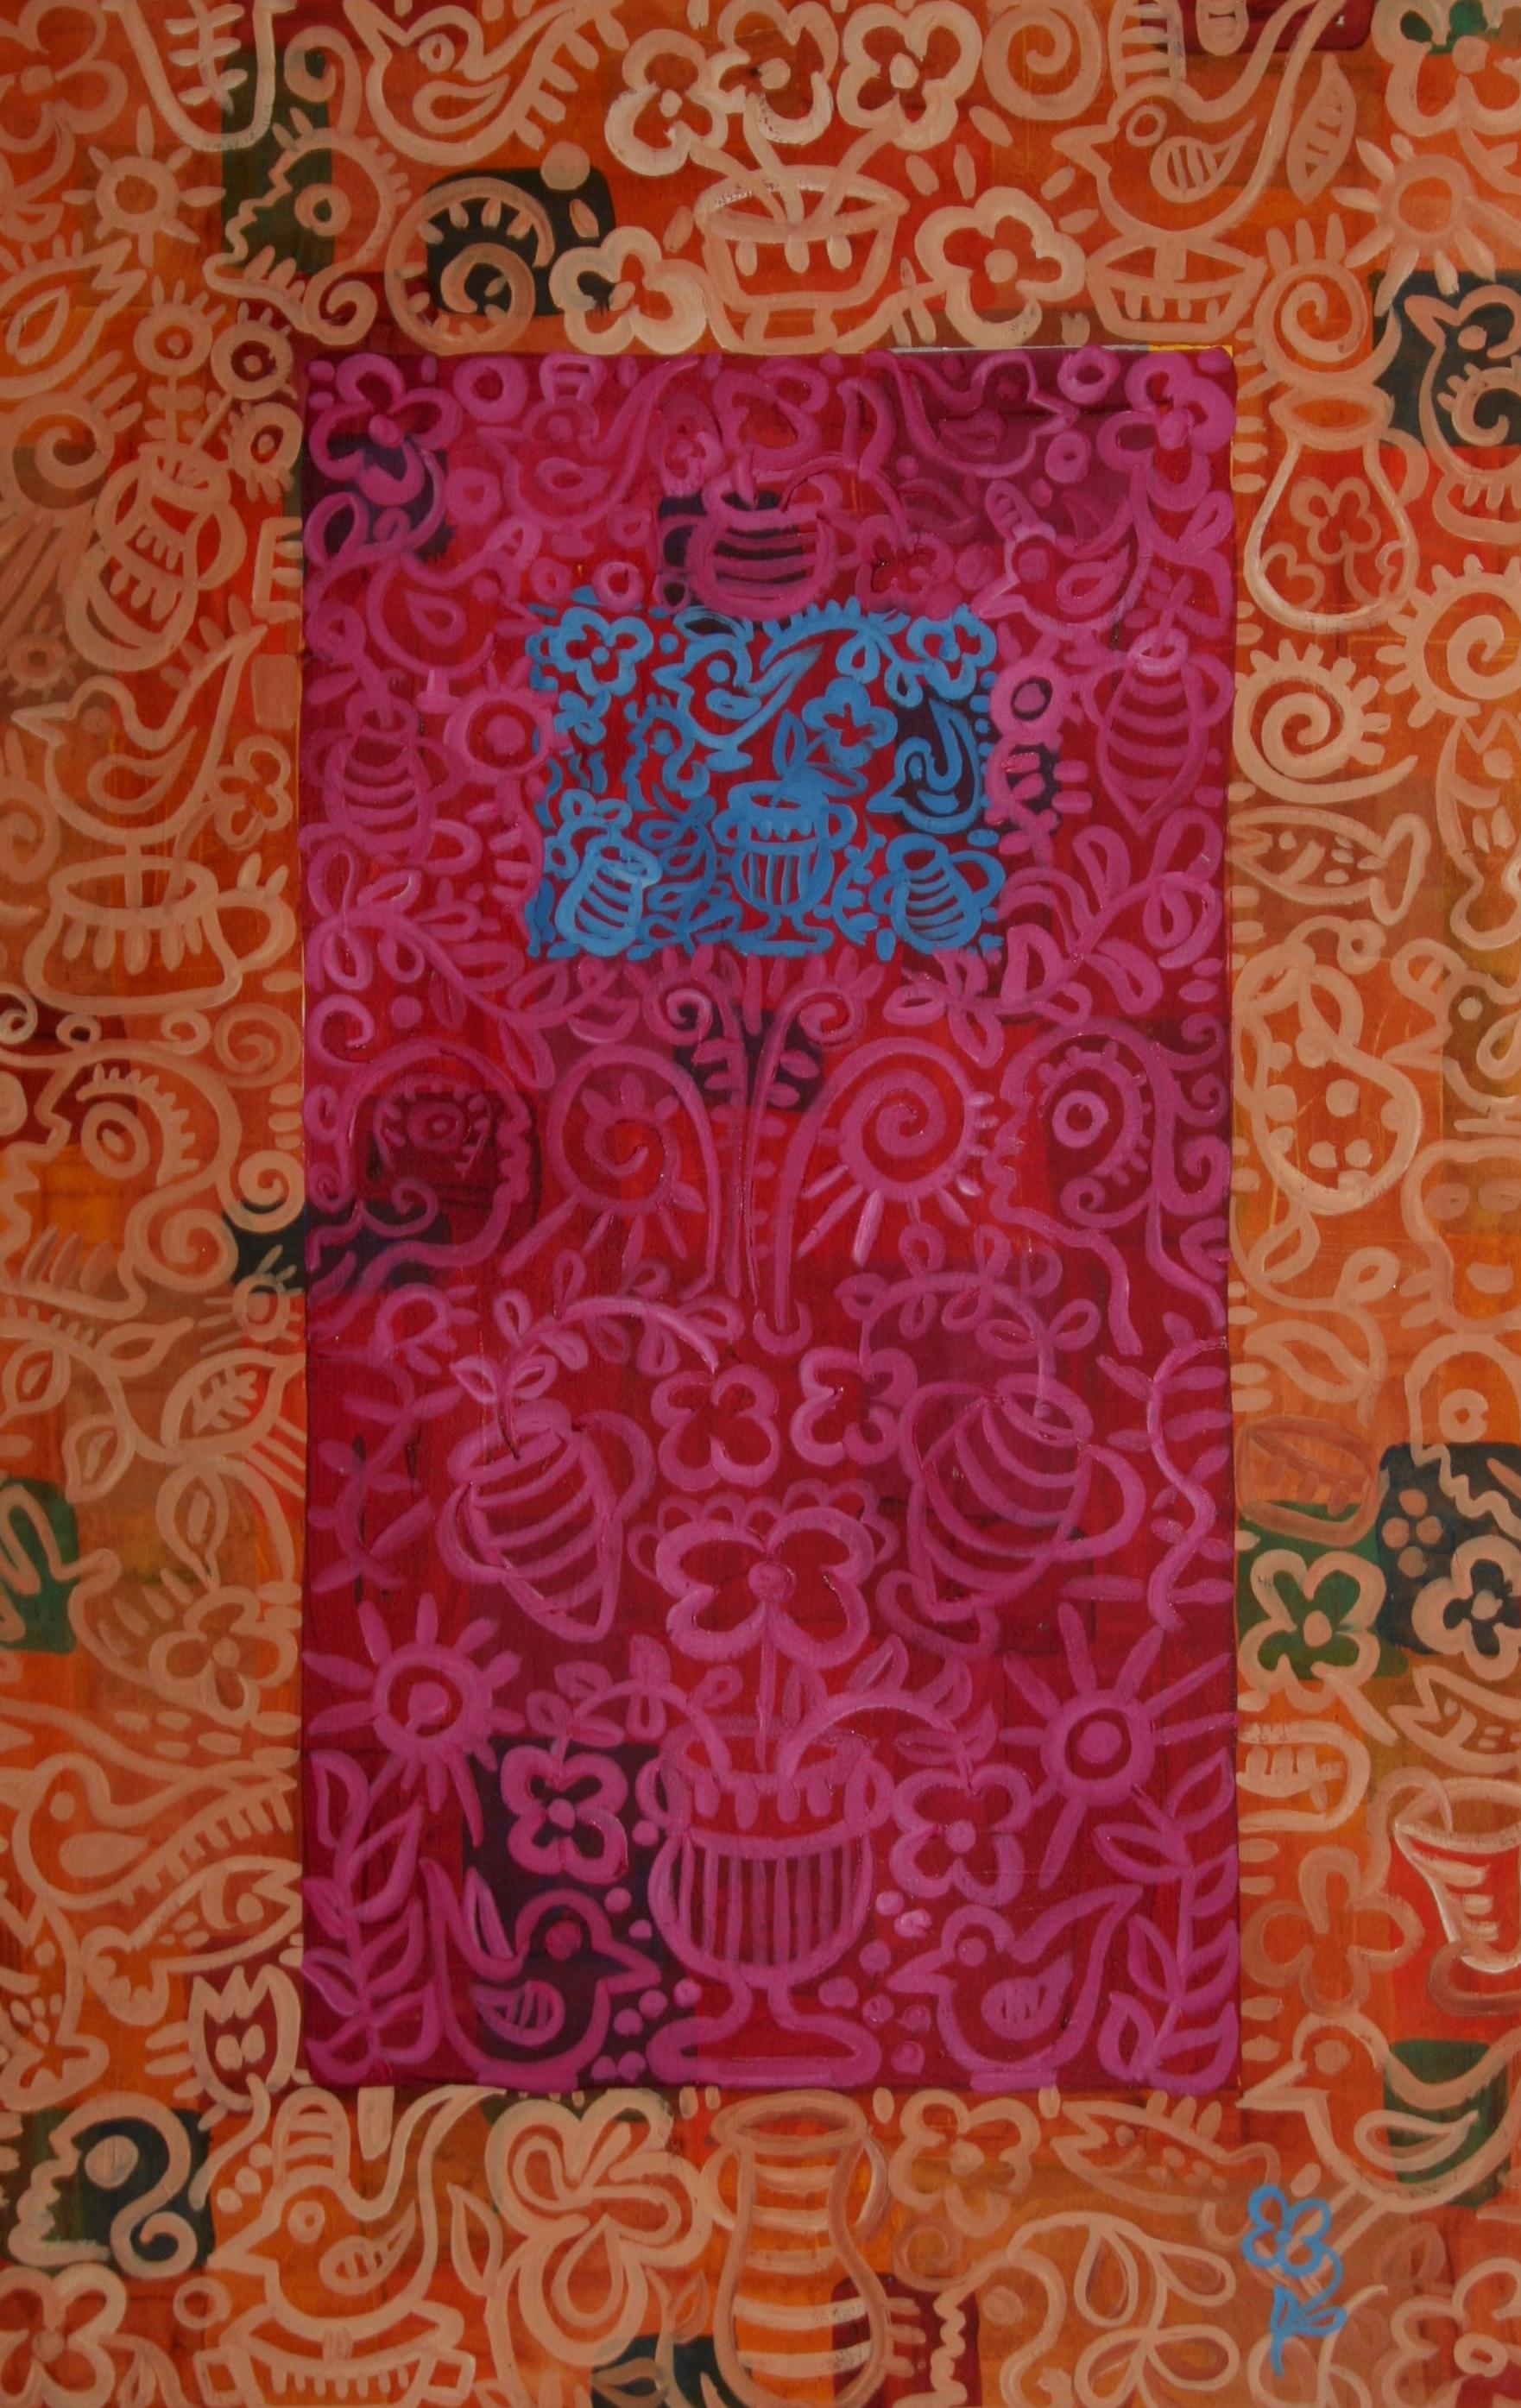 Egyptian Series: Orange and Pink Giclée Print on Paper or Canvas